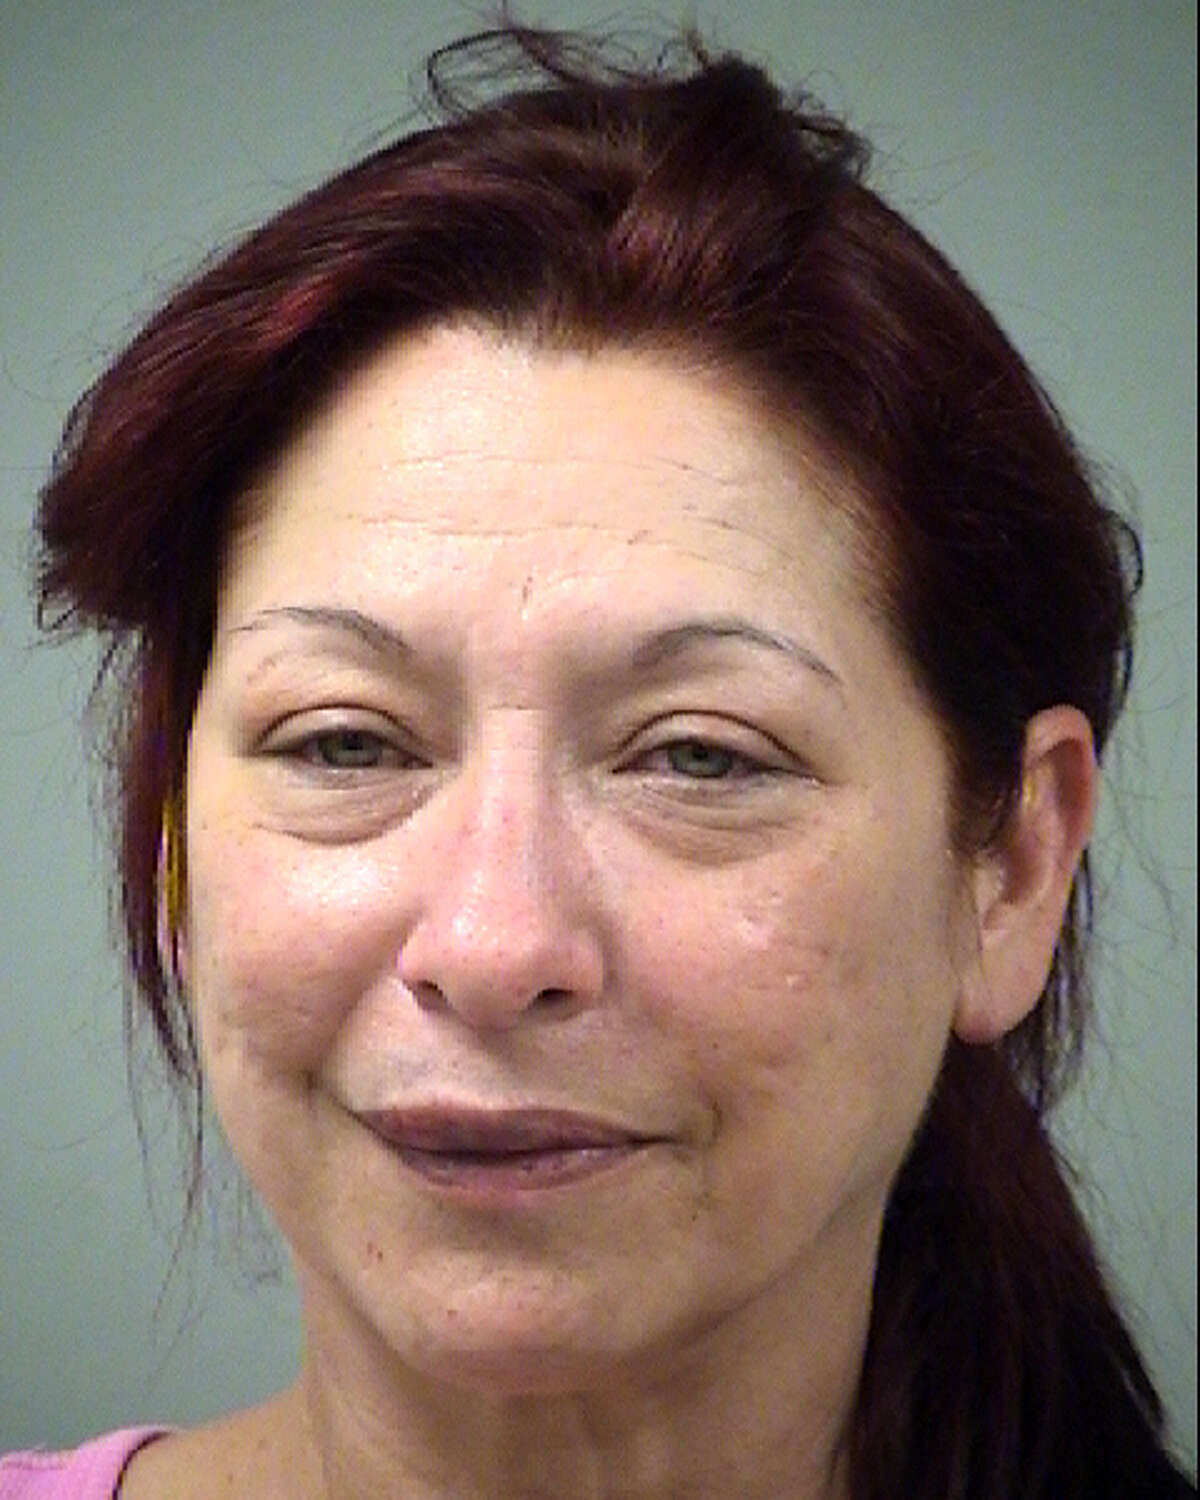 Laura Lopez was charged with driving while intoxicated on May 21, 2018.